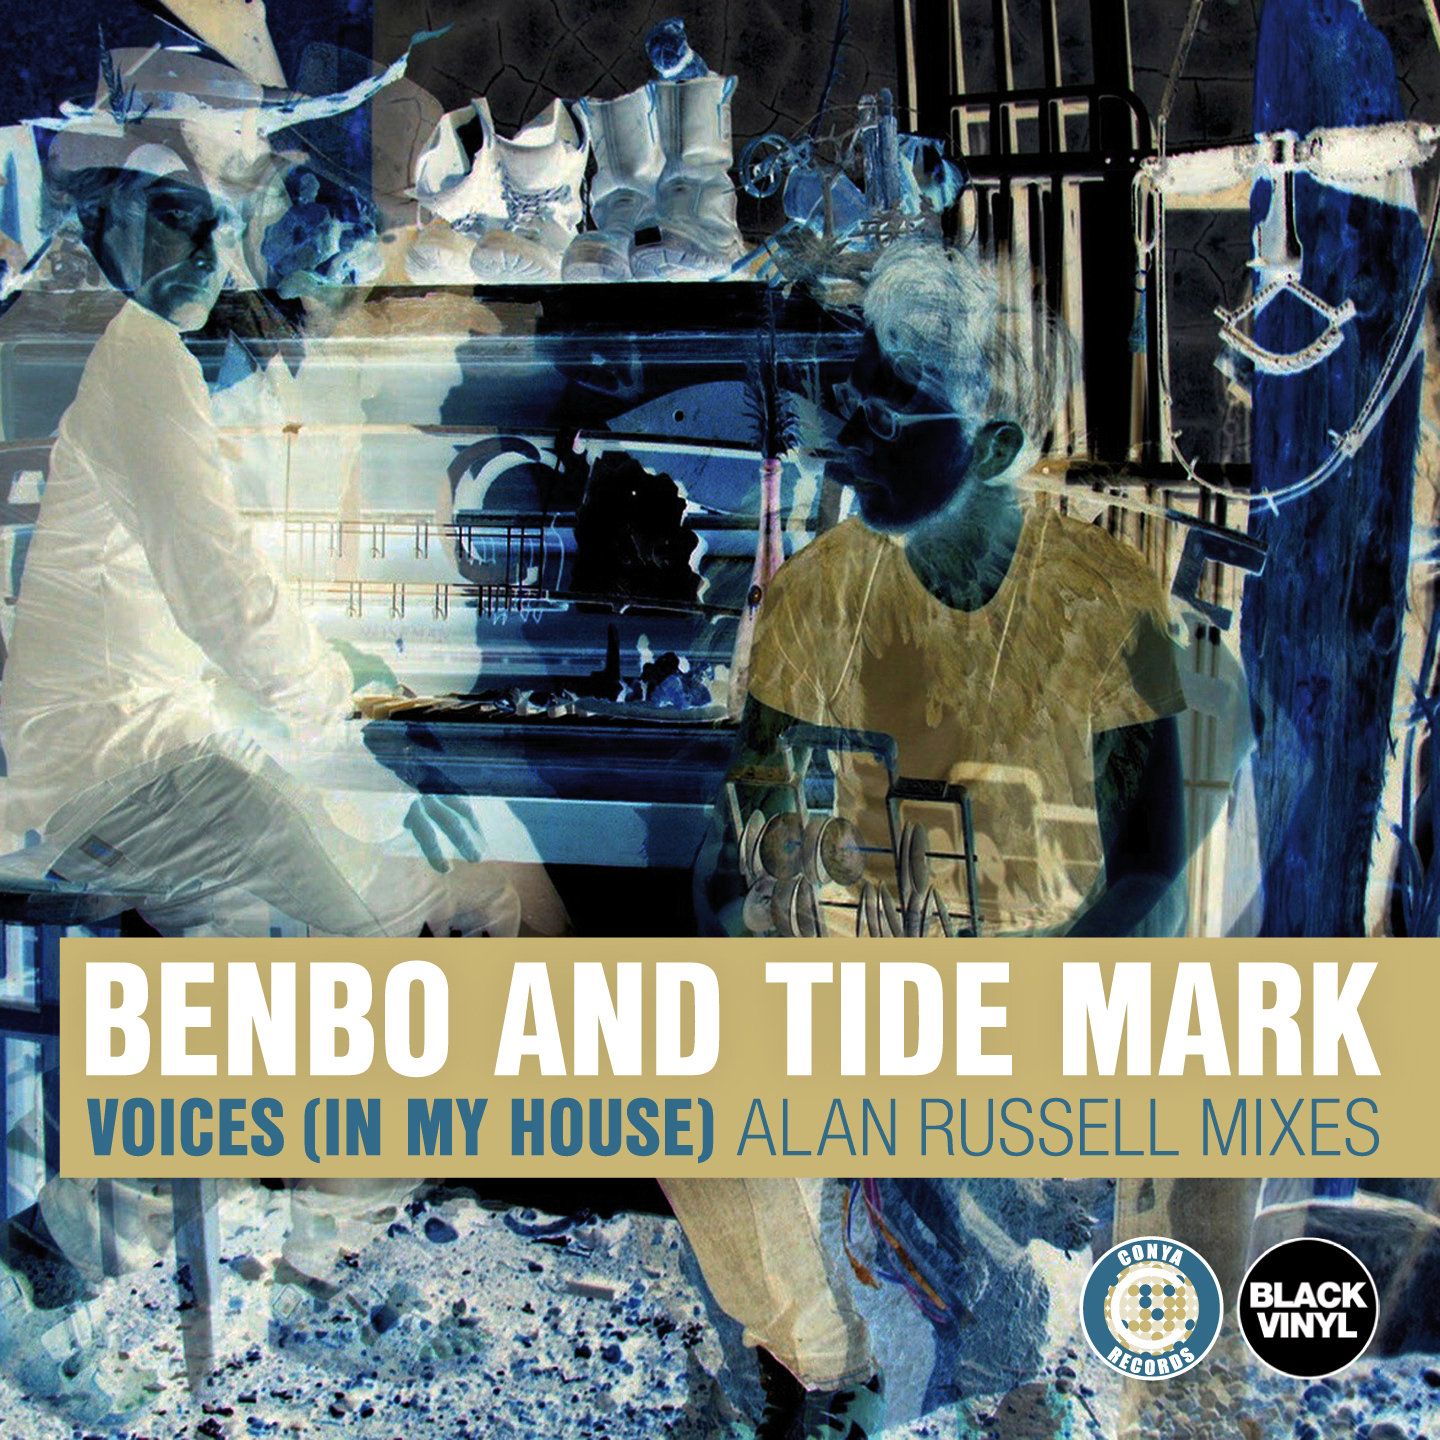 Benbo & Tide Mark: Voices (In My House)